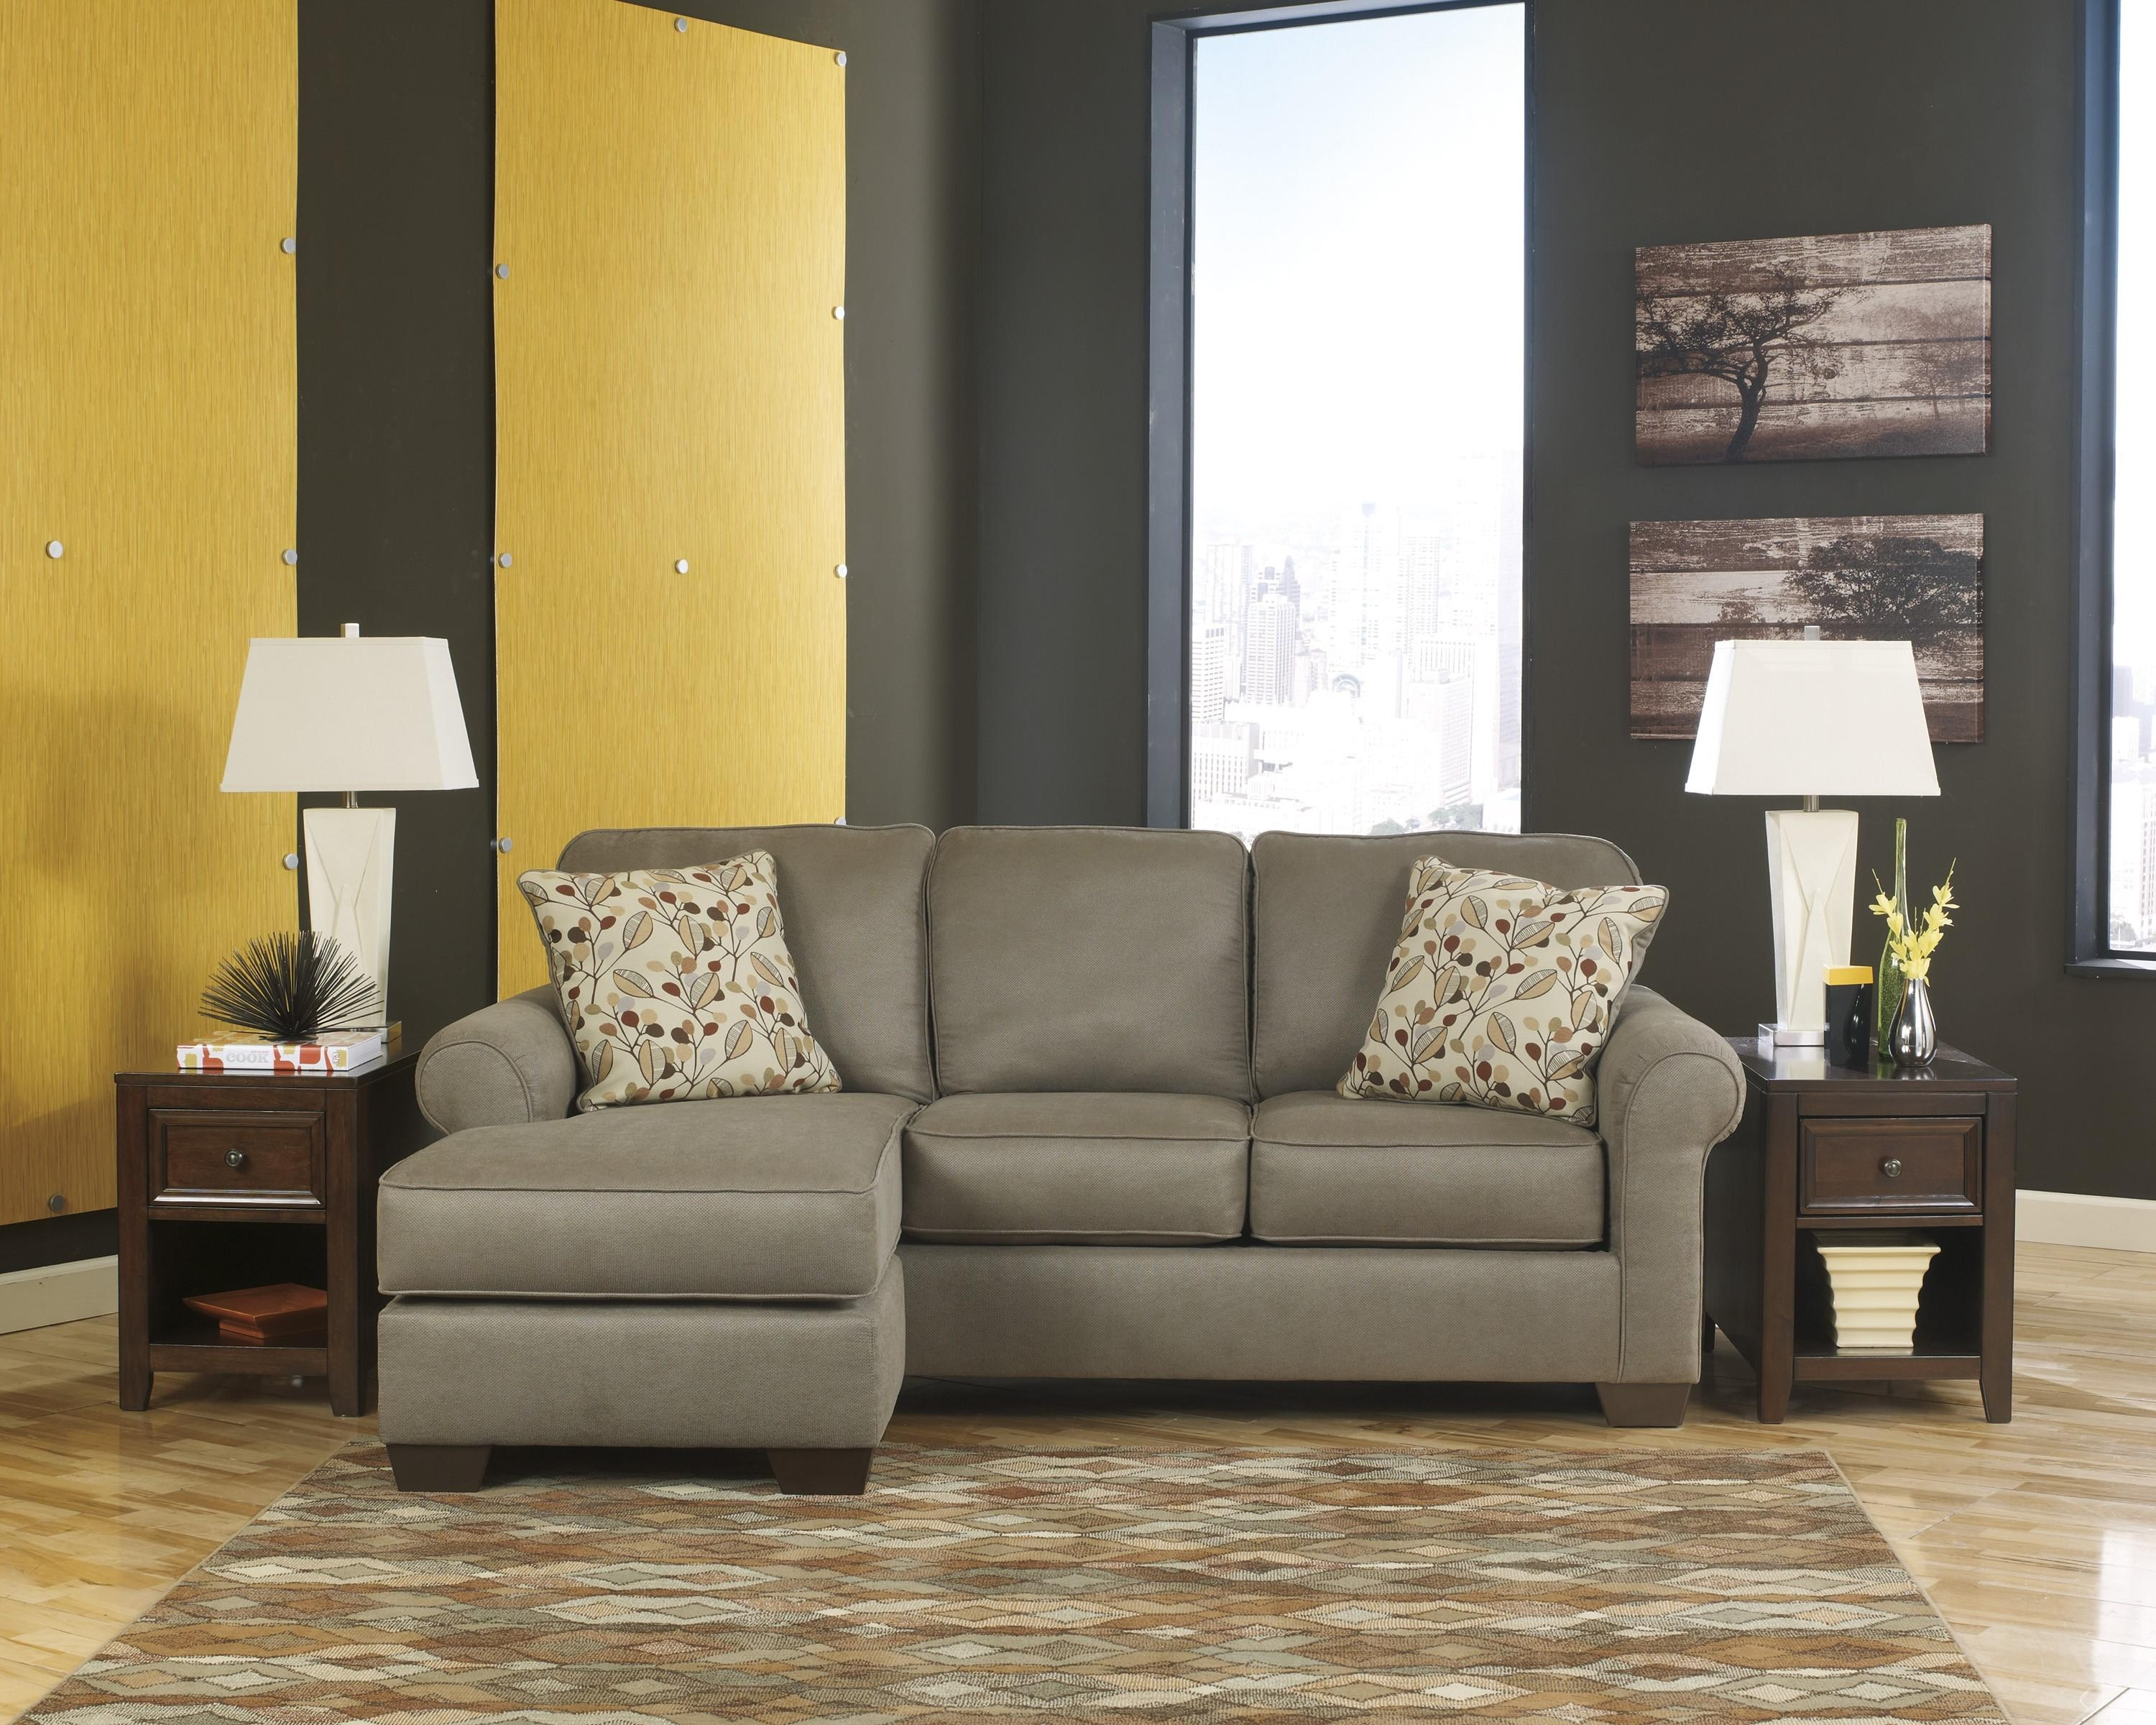 Decor: Berkline Sectional Sofa | Benchcraft Sofa Pertaining To Berkline Sectional Sofas (Image 8 of 20)